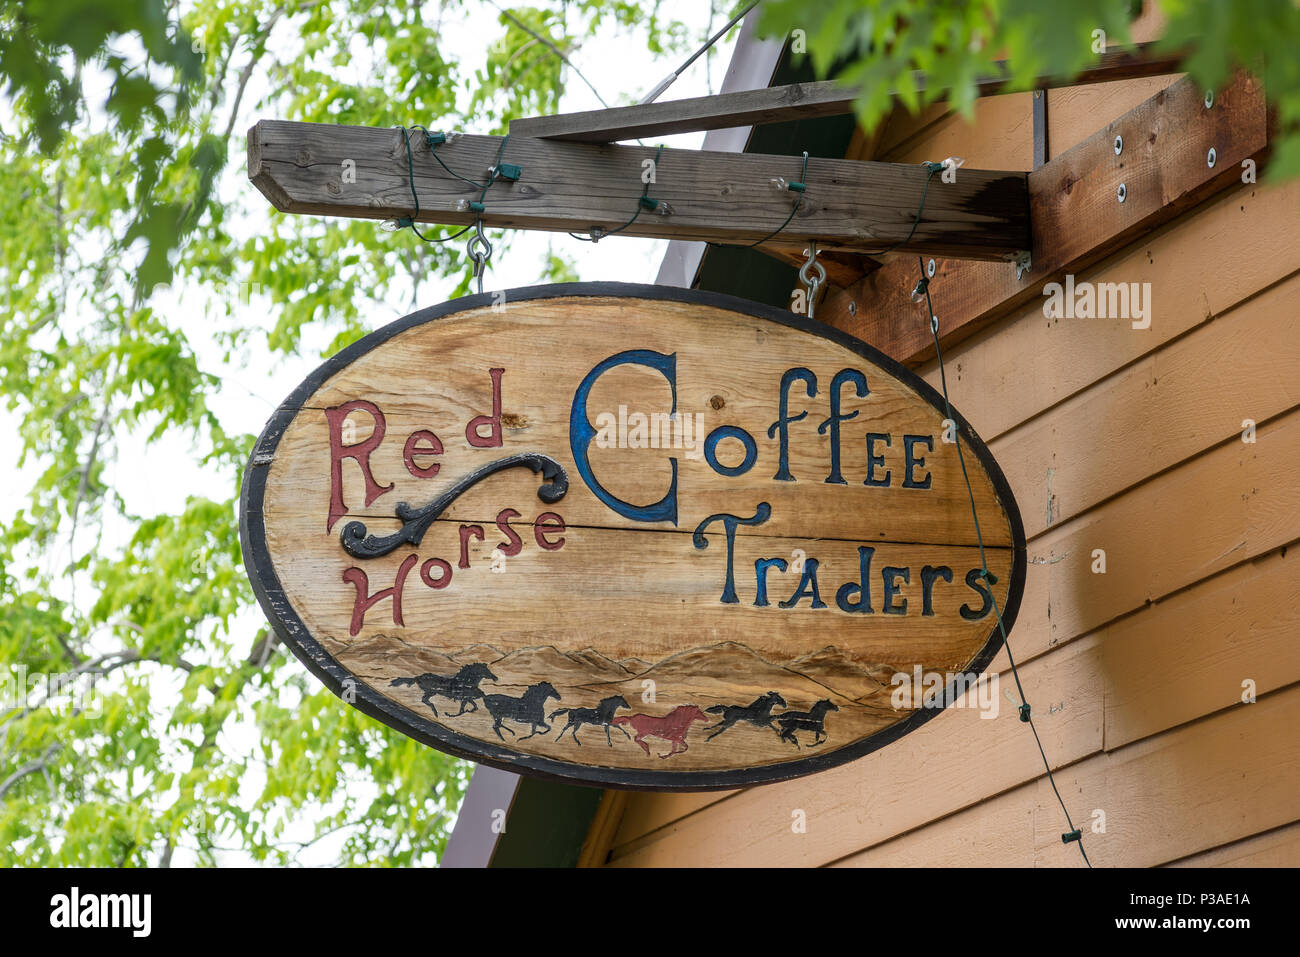 Artistic wood sign outside Red Horse Coffee Traders in Joseph ...